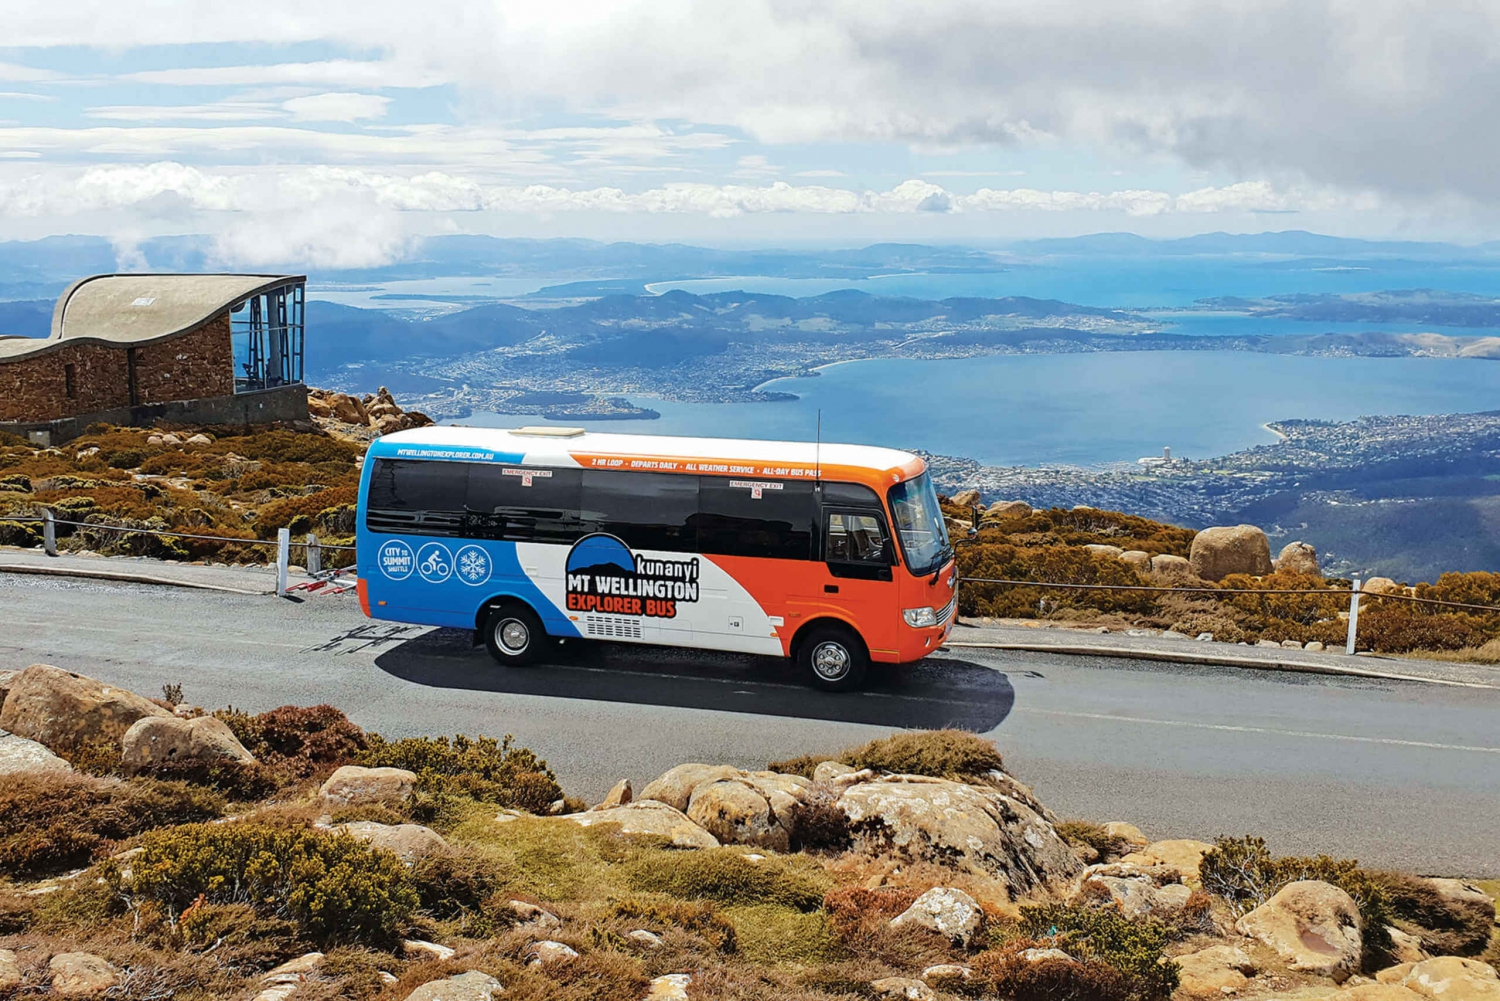 48-Hour Hobart City Loop Tour and Mt Wellington